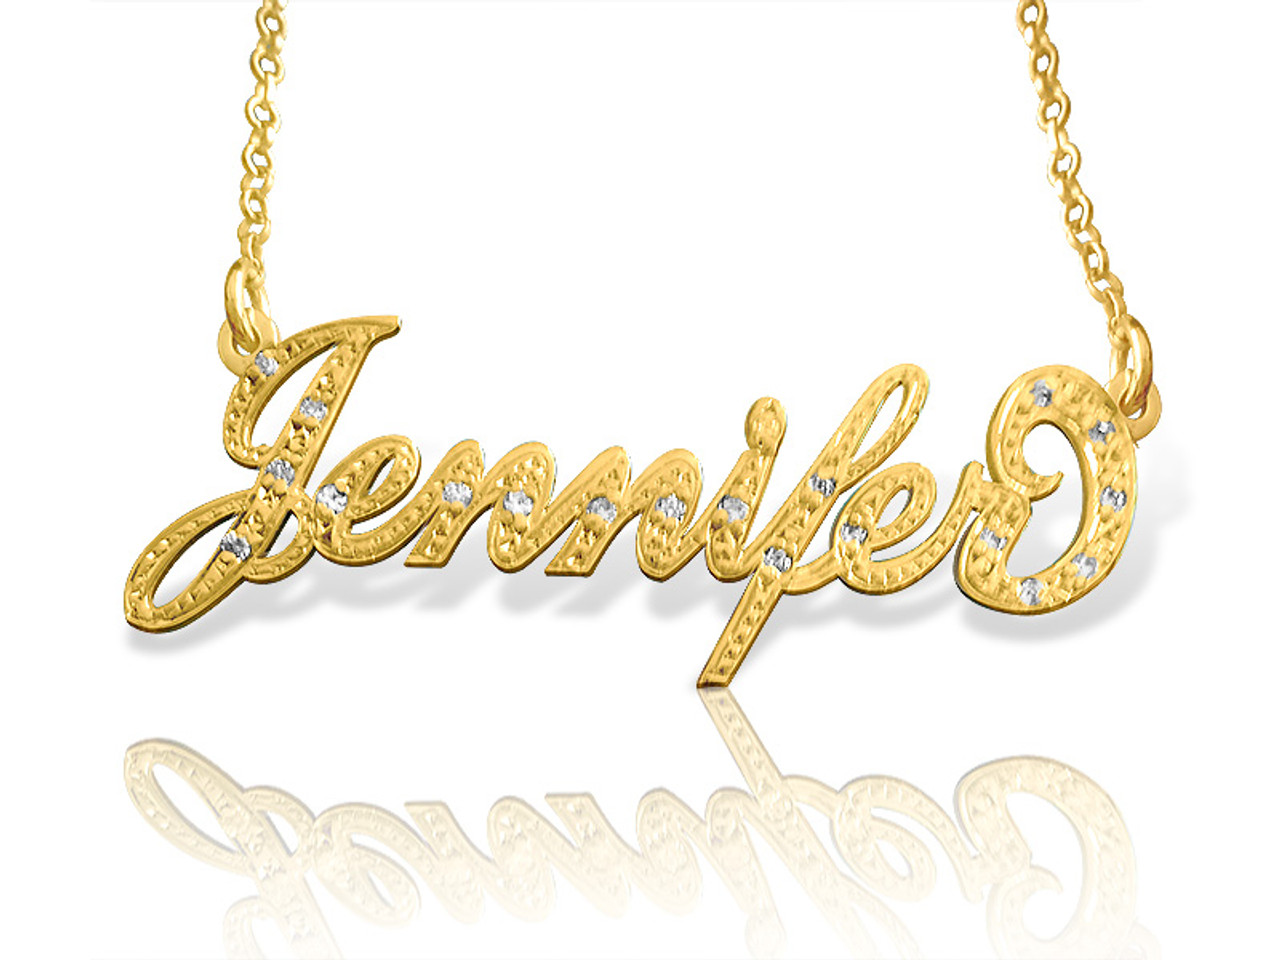 59b94e6b181a18 Carrie Style Name Necklace with Diamonds in gold